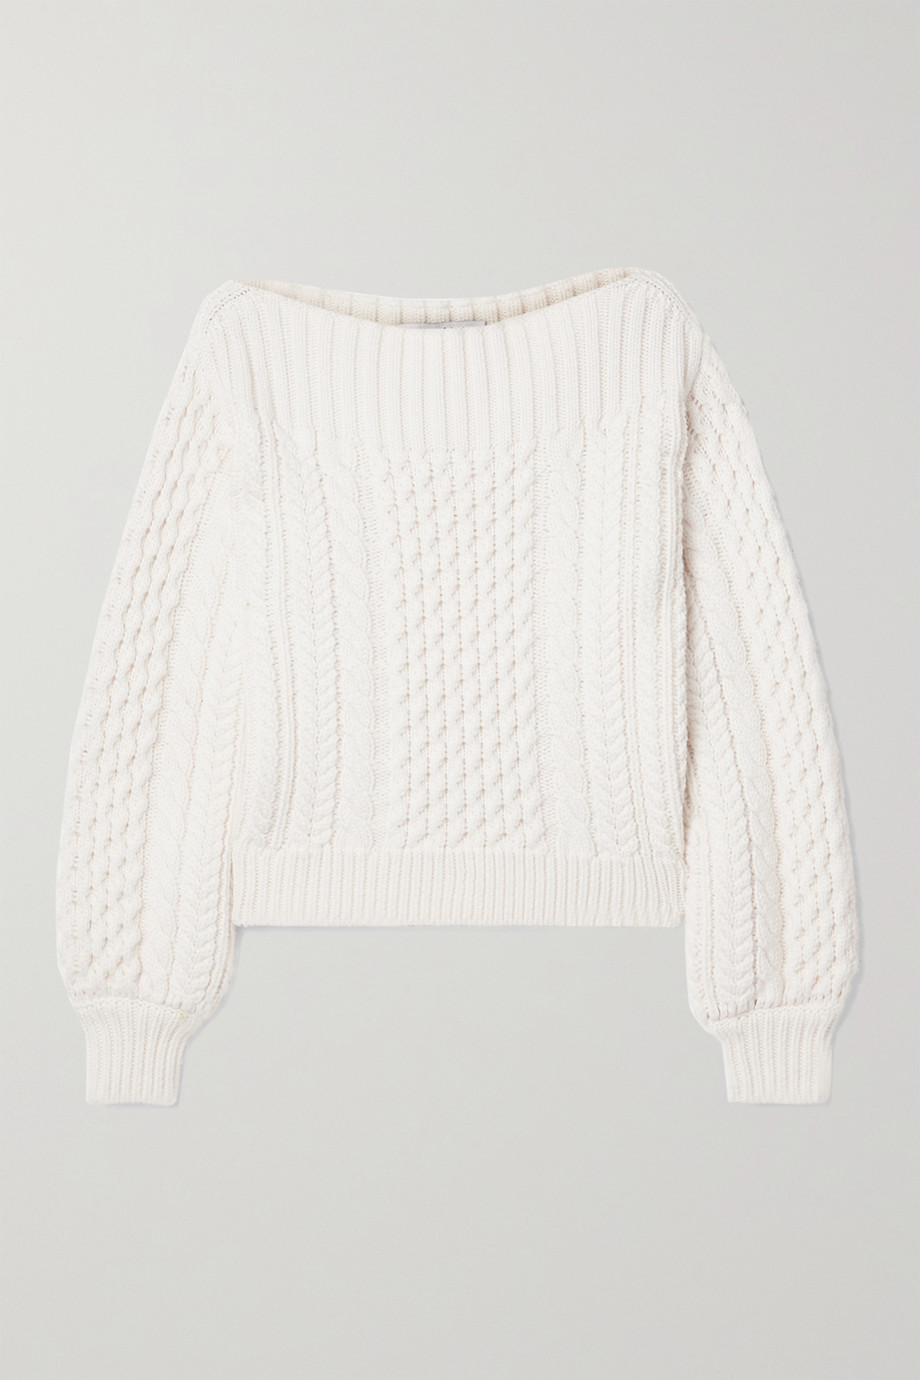 PROENZA SCHOULER WHITE LABEL Cable-knit wool-blend sweater